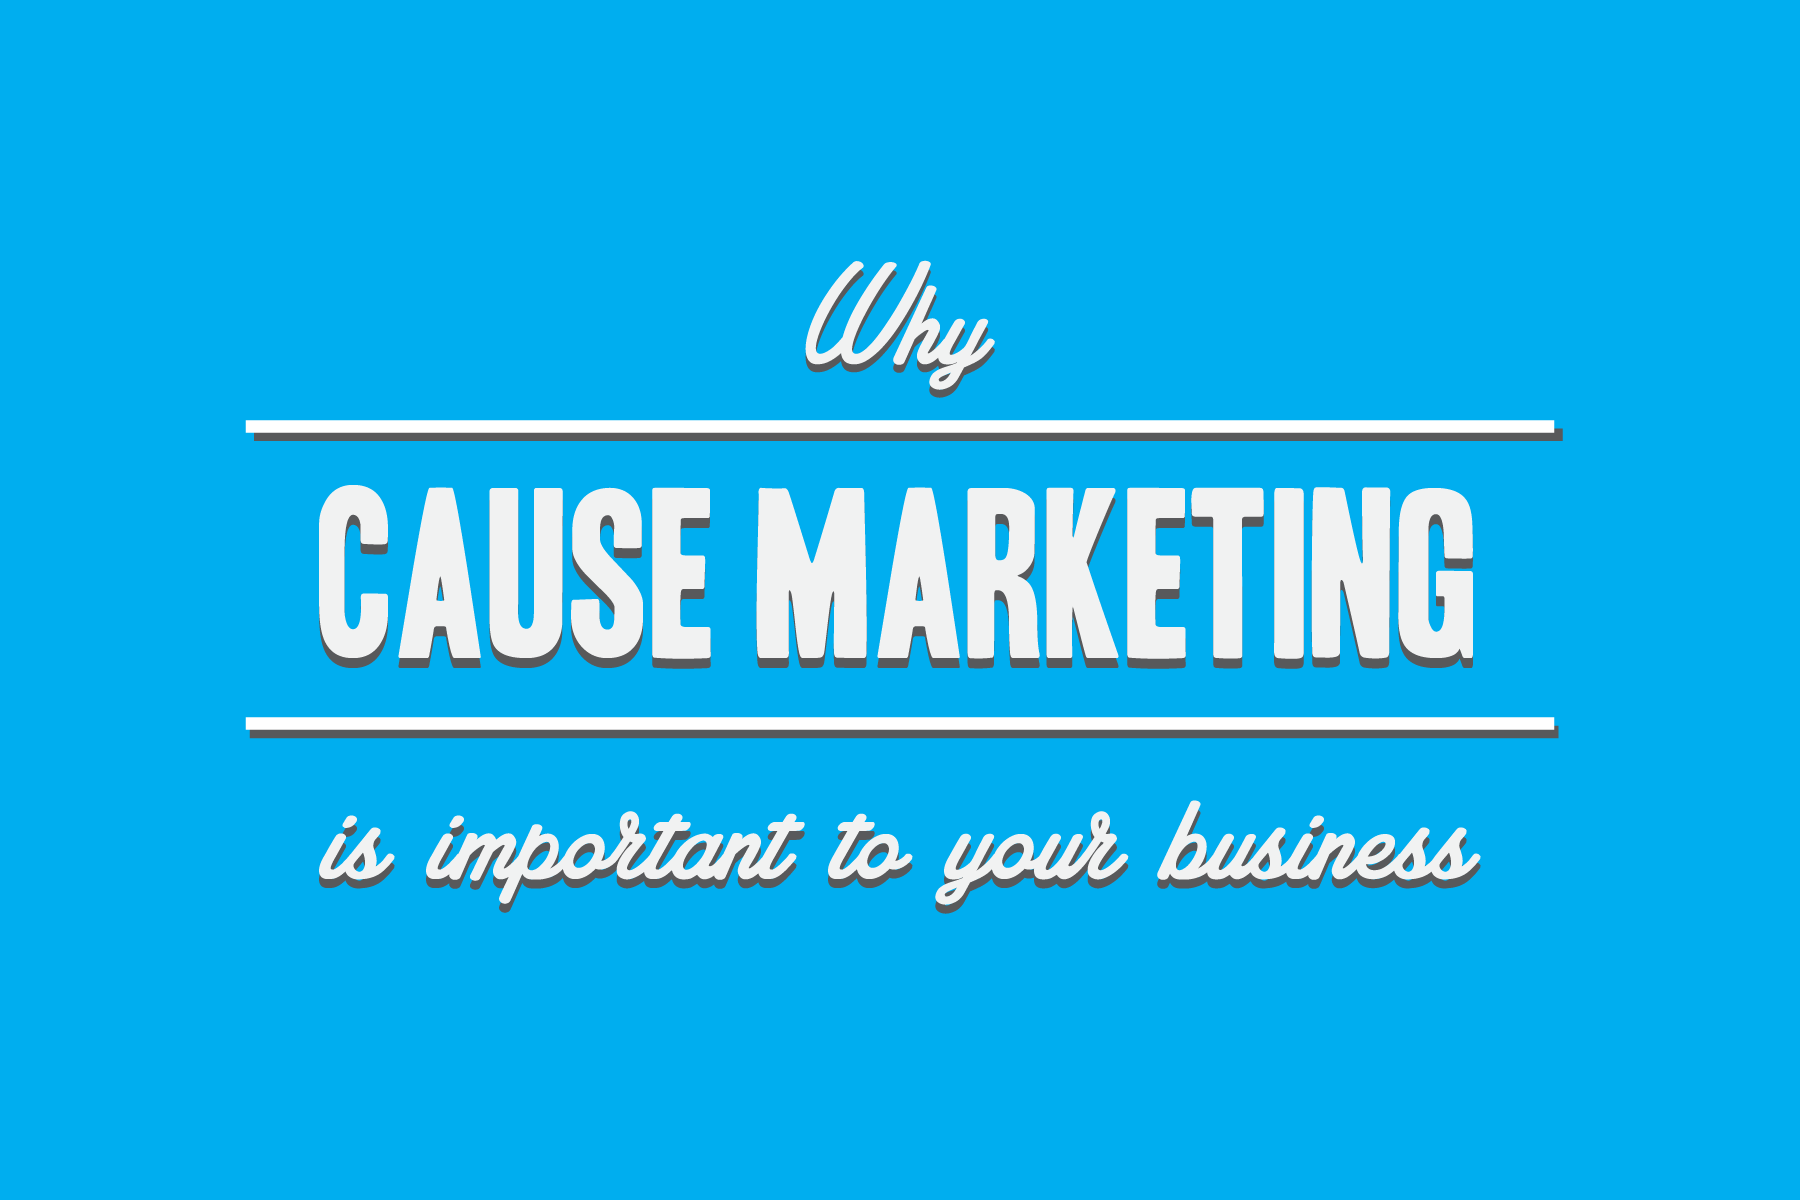 Why Cause Marketing Is Important to Your Business